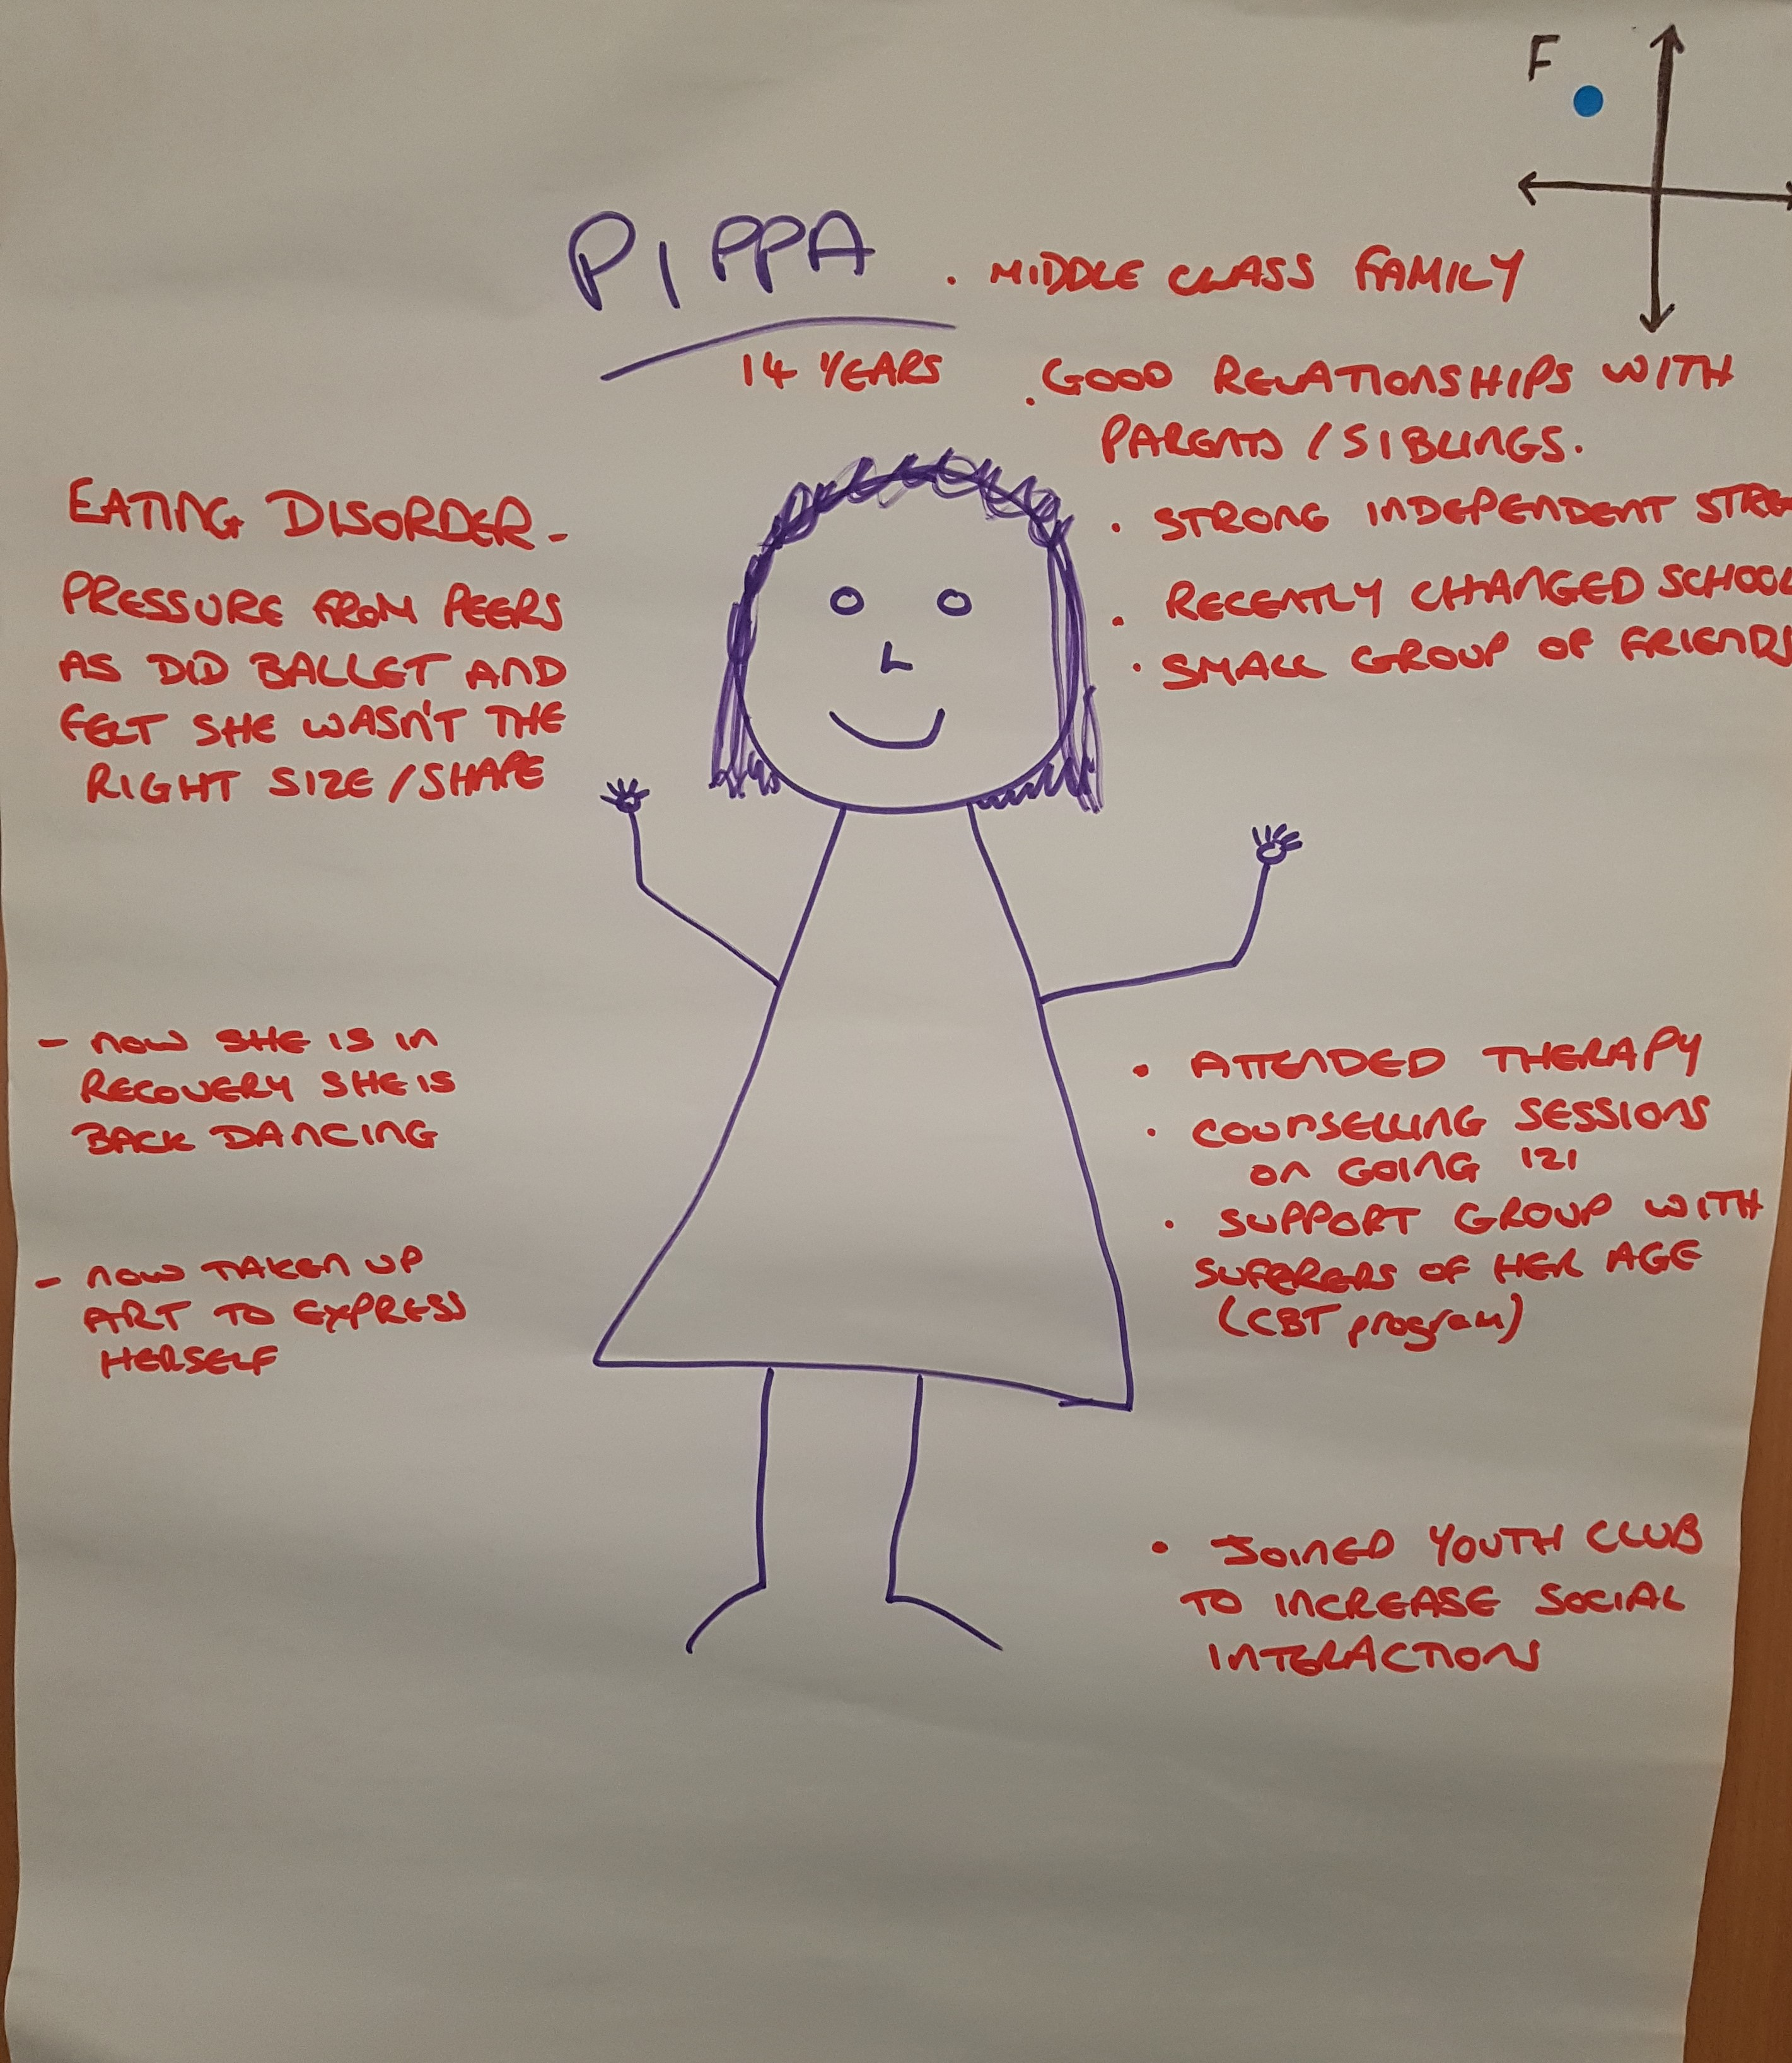 Youth MHFA – the course where participants invest in the young case characters mental health journey to recovery